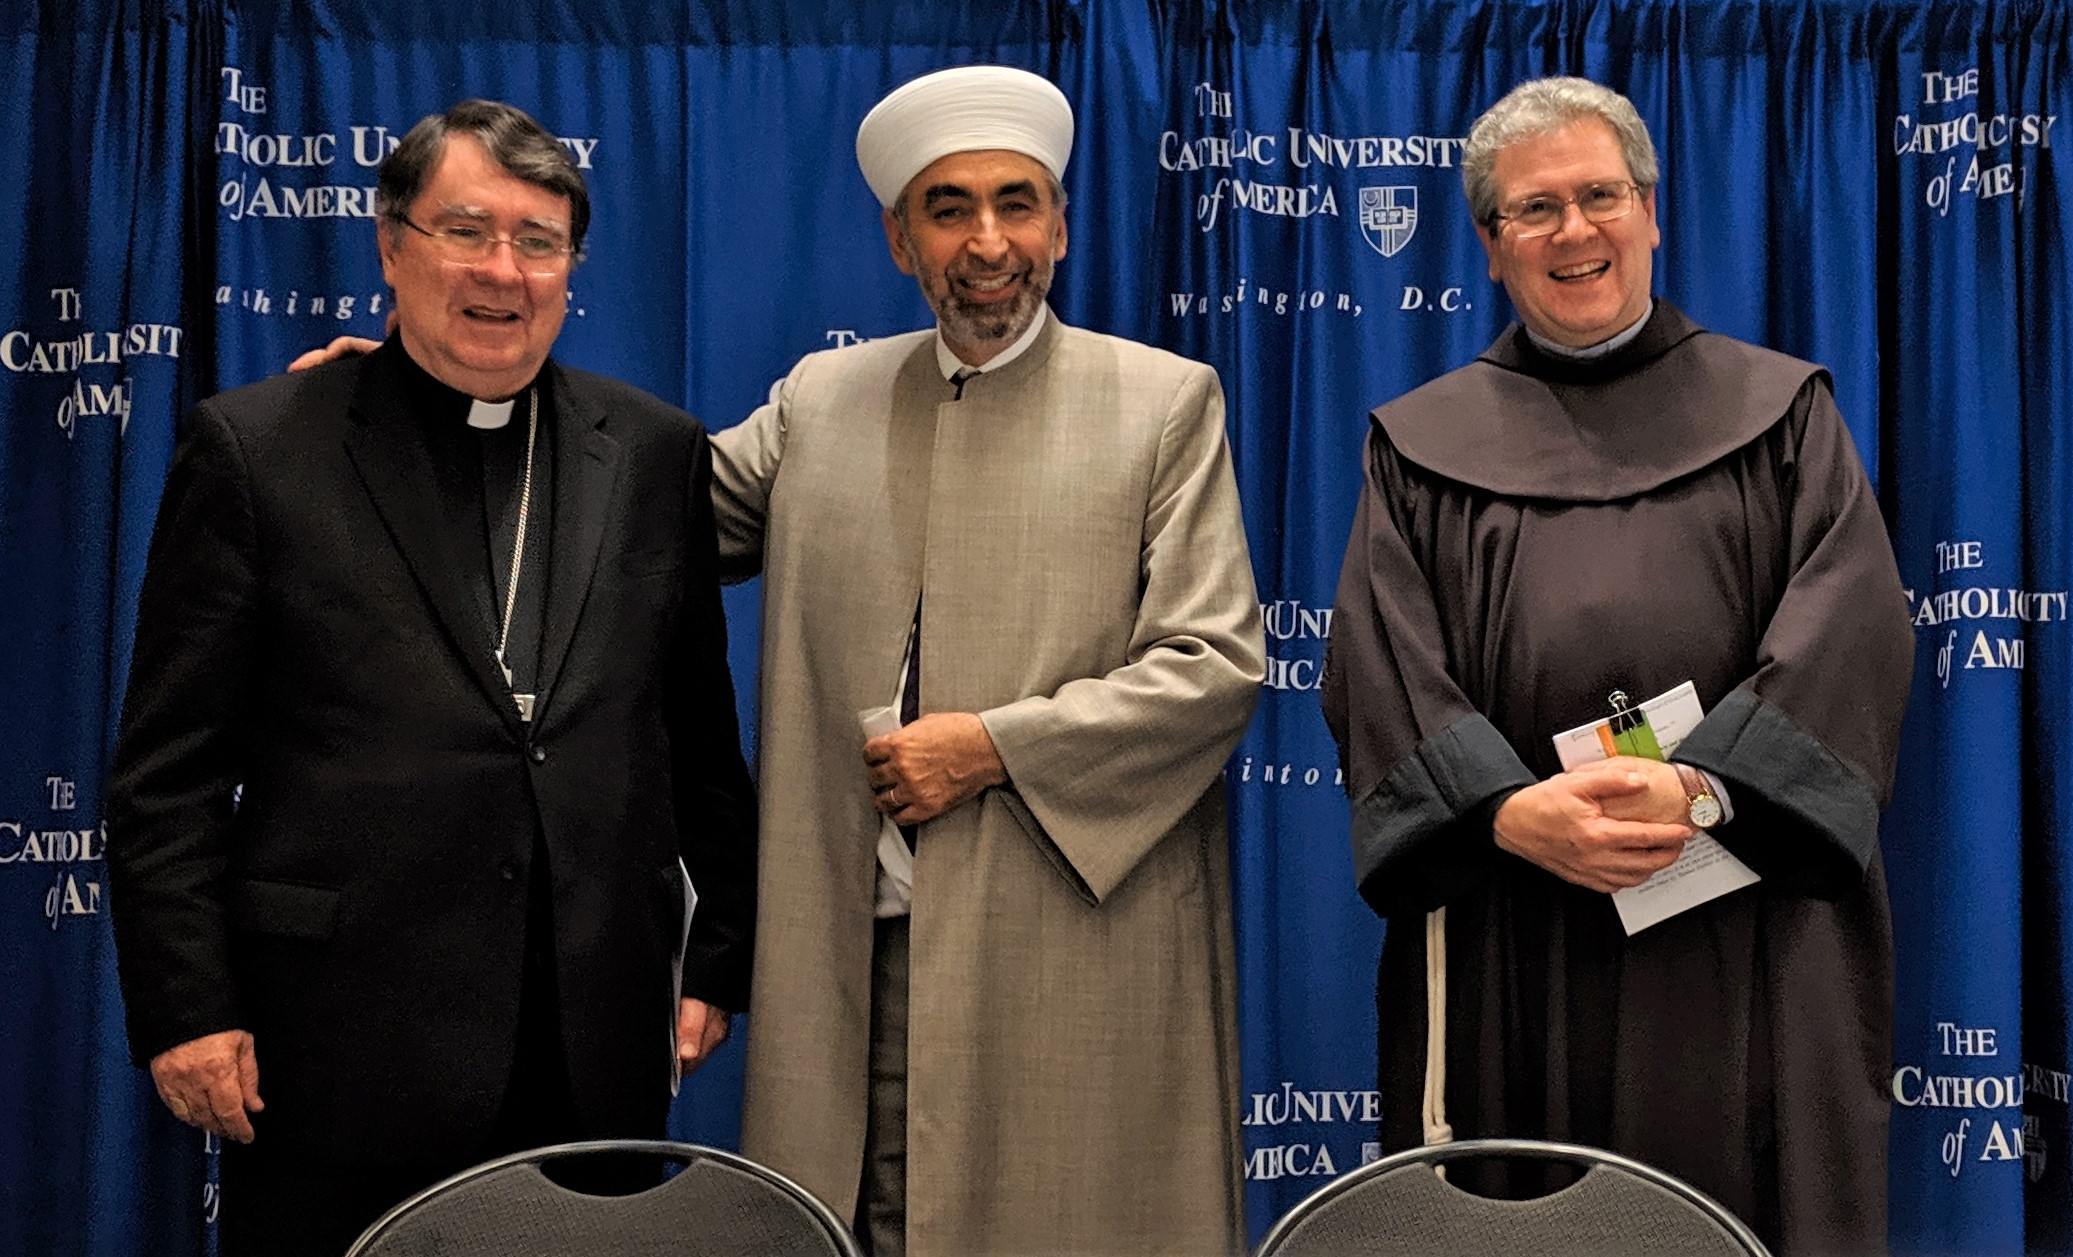 Father Custos (at right) the Apostolic Nuncio to the United States, Archbishop Christophe Pierre (at left) and (in center) Imam Mohamad Bashar Arafat